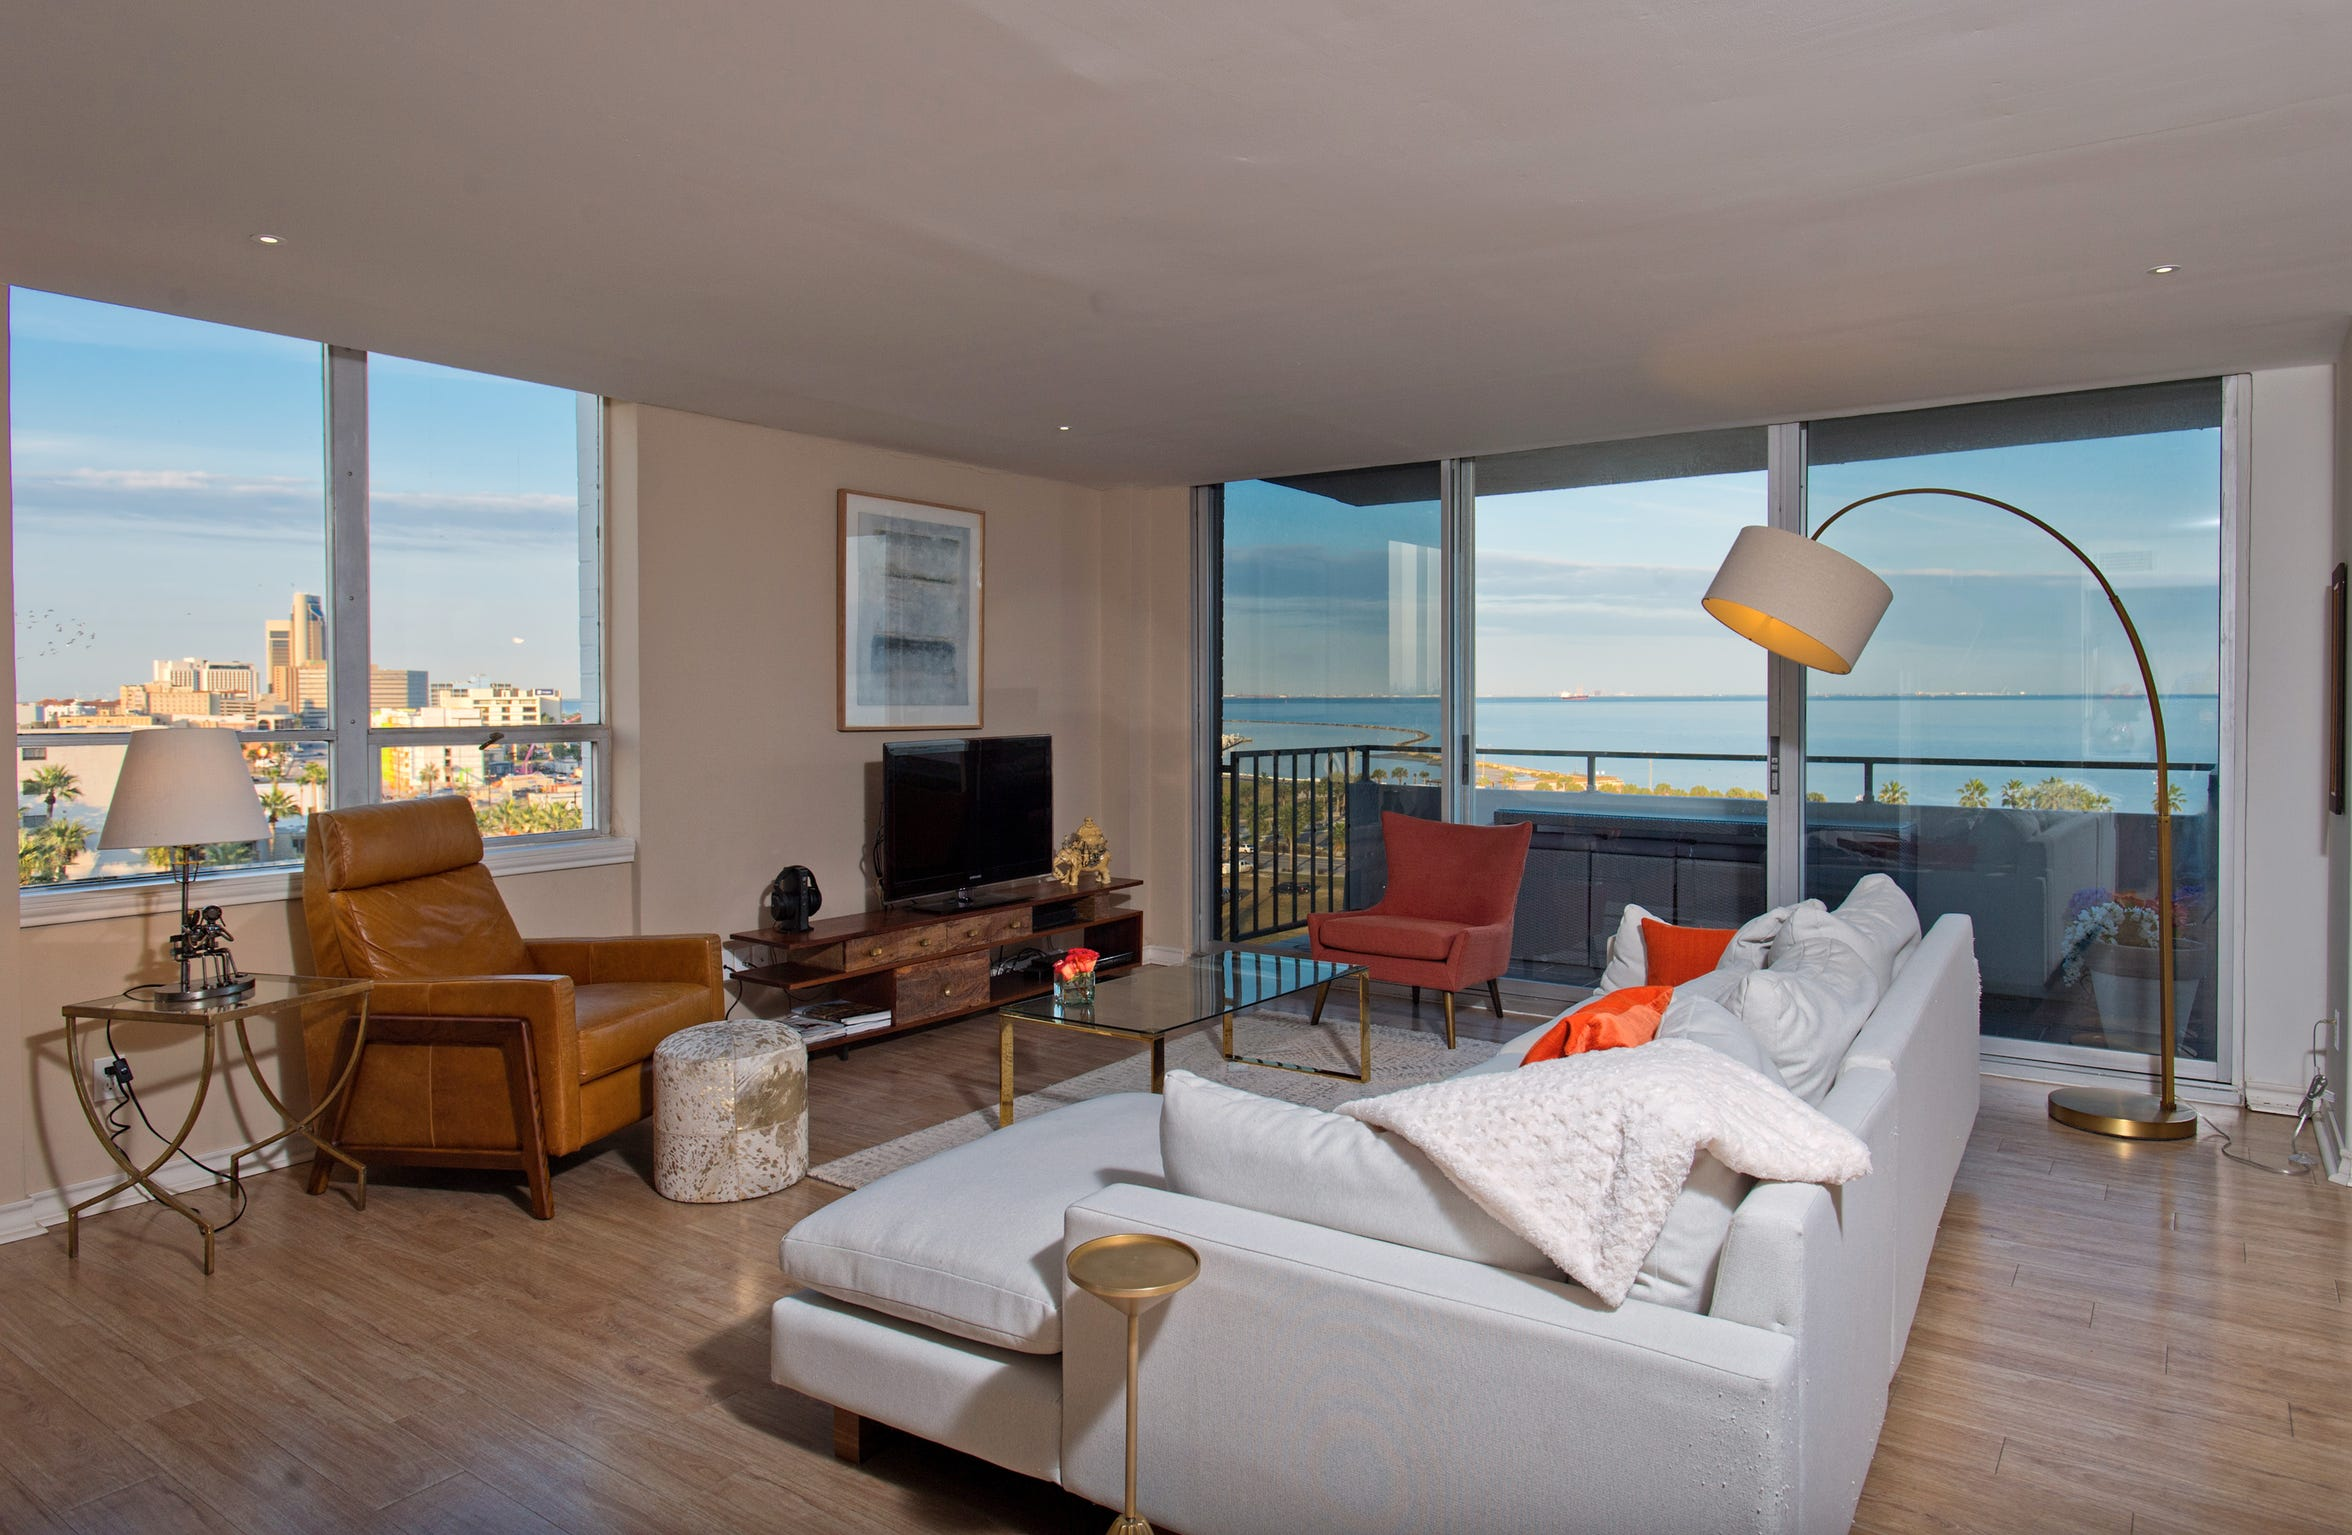 The corner living space of this 7th floor unit takes in panoramic views of Corpus Christi Bay, the parks, marina and downtown.